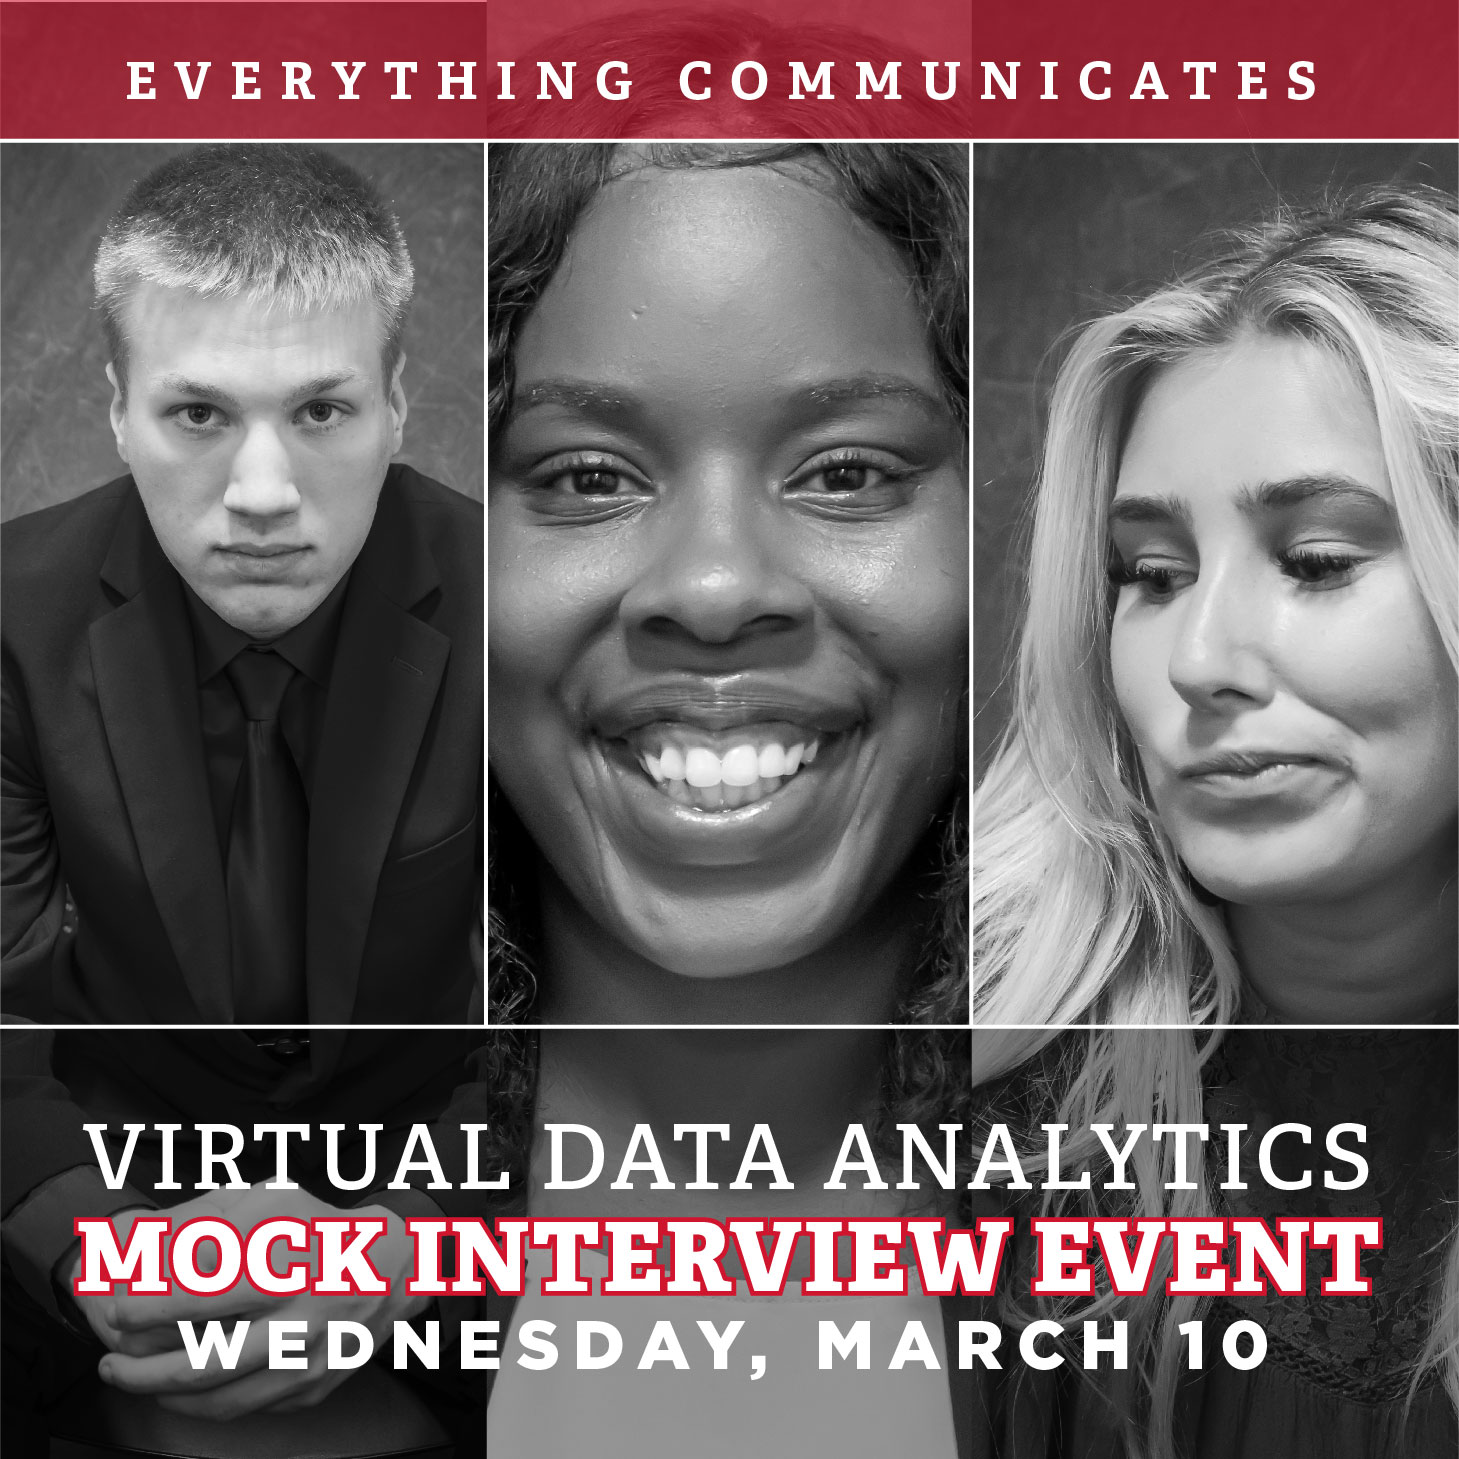 Register for the Virtual Data Analytics Mock Interview Event on March 10